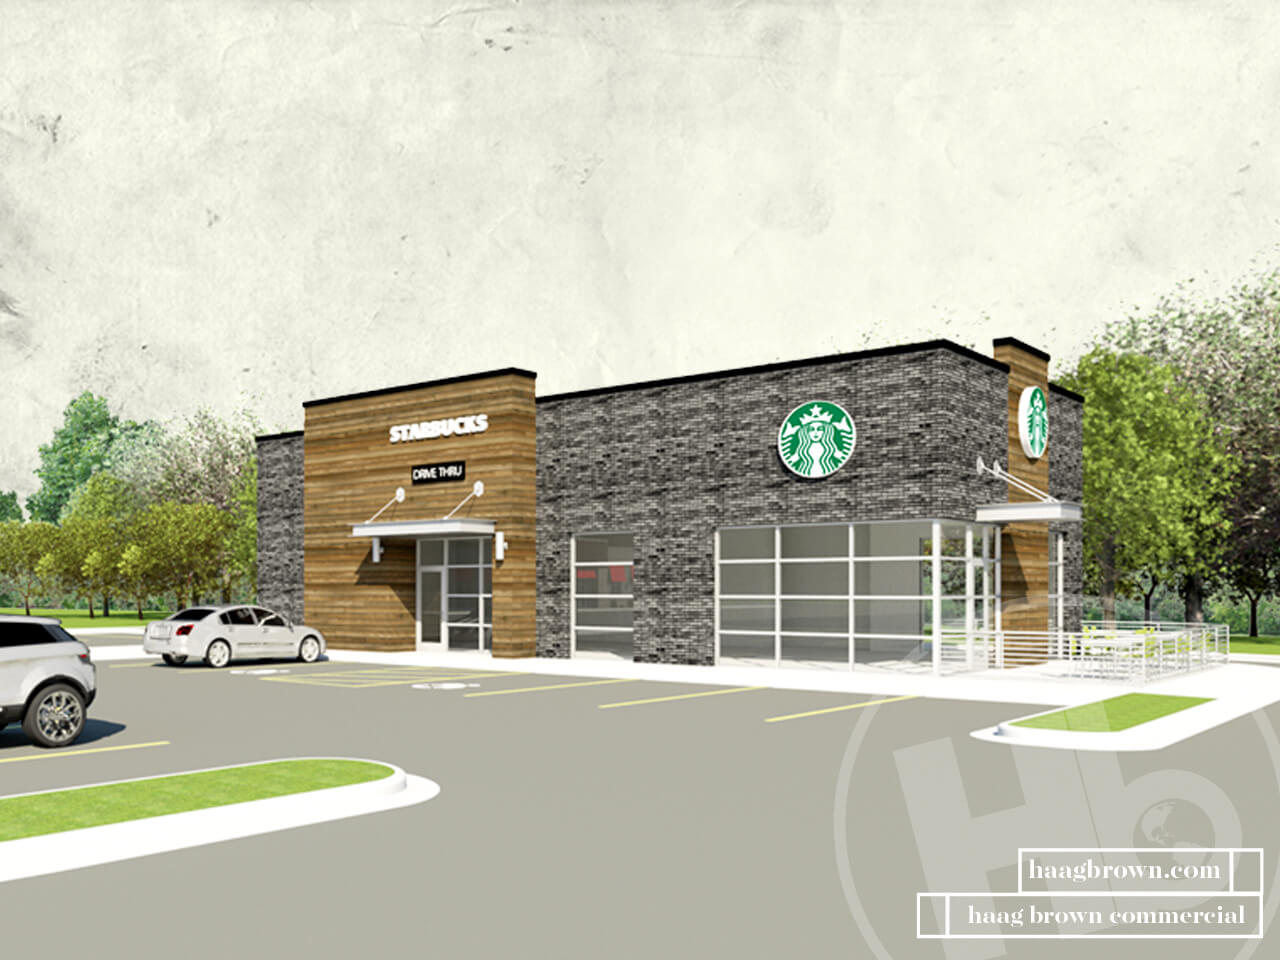 haag brown commercial real estate and development starbucks in